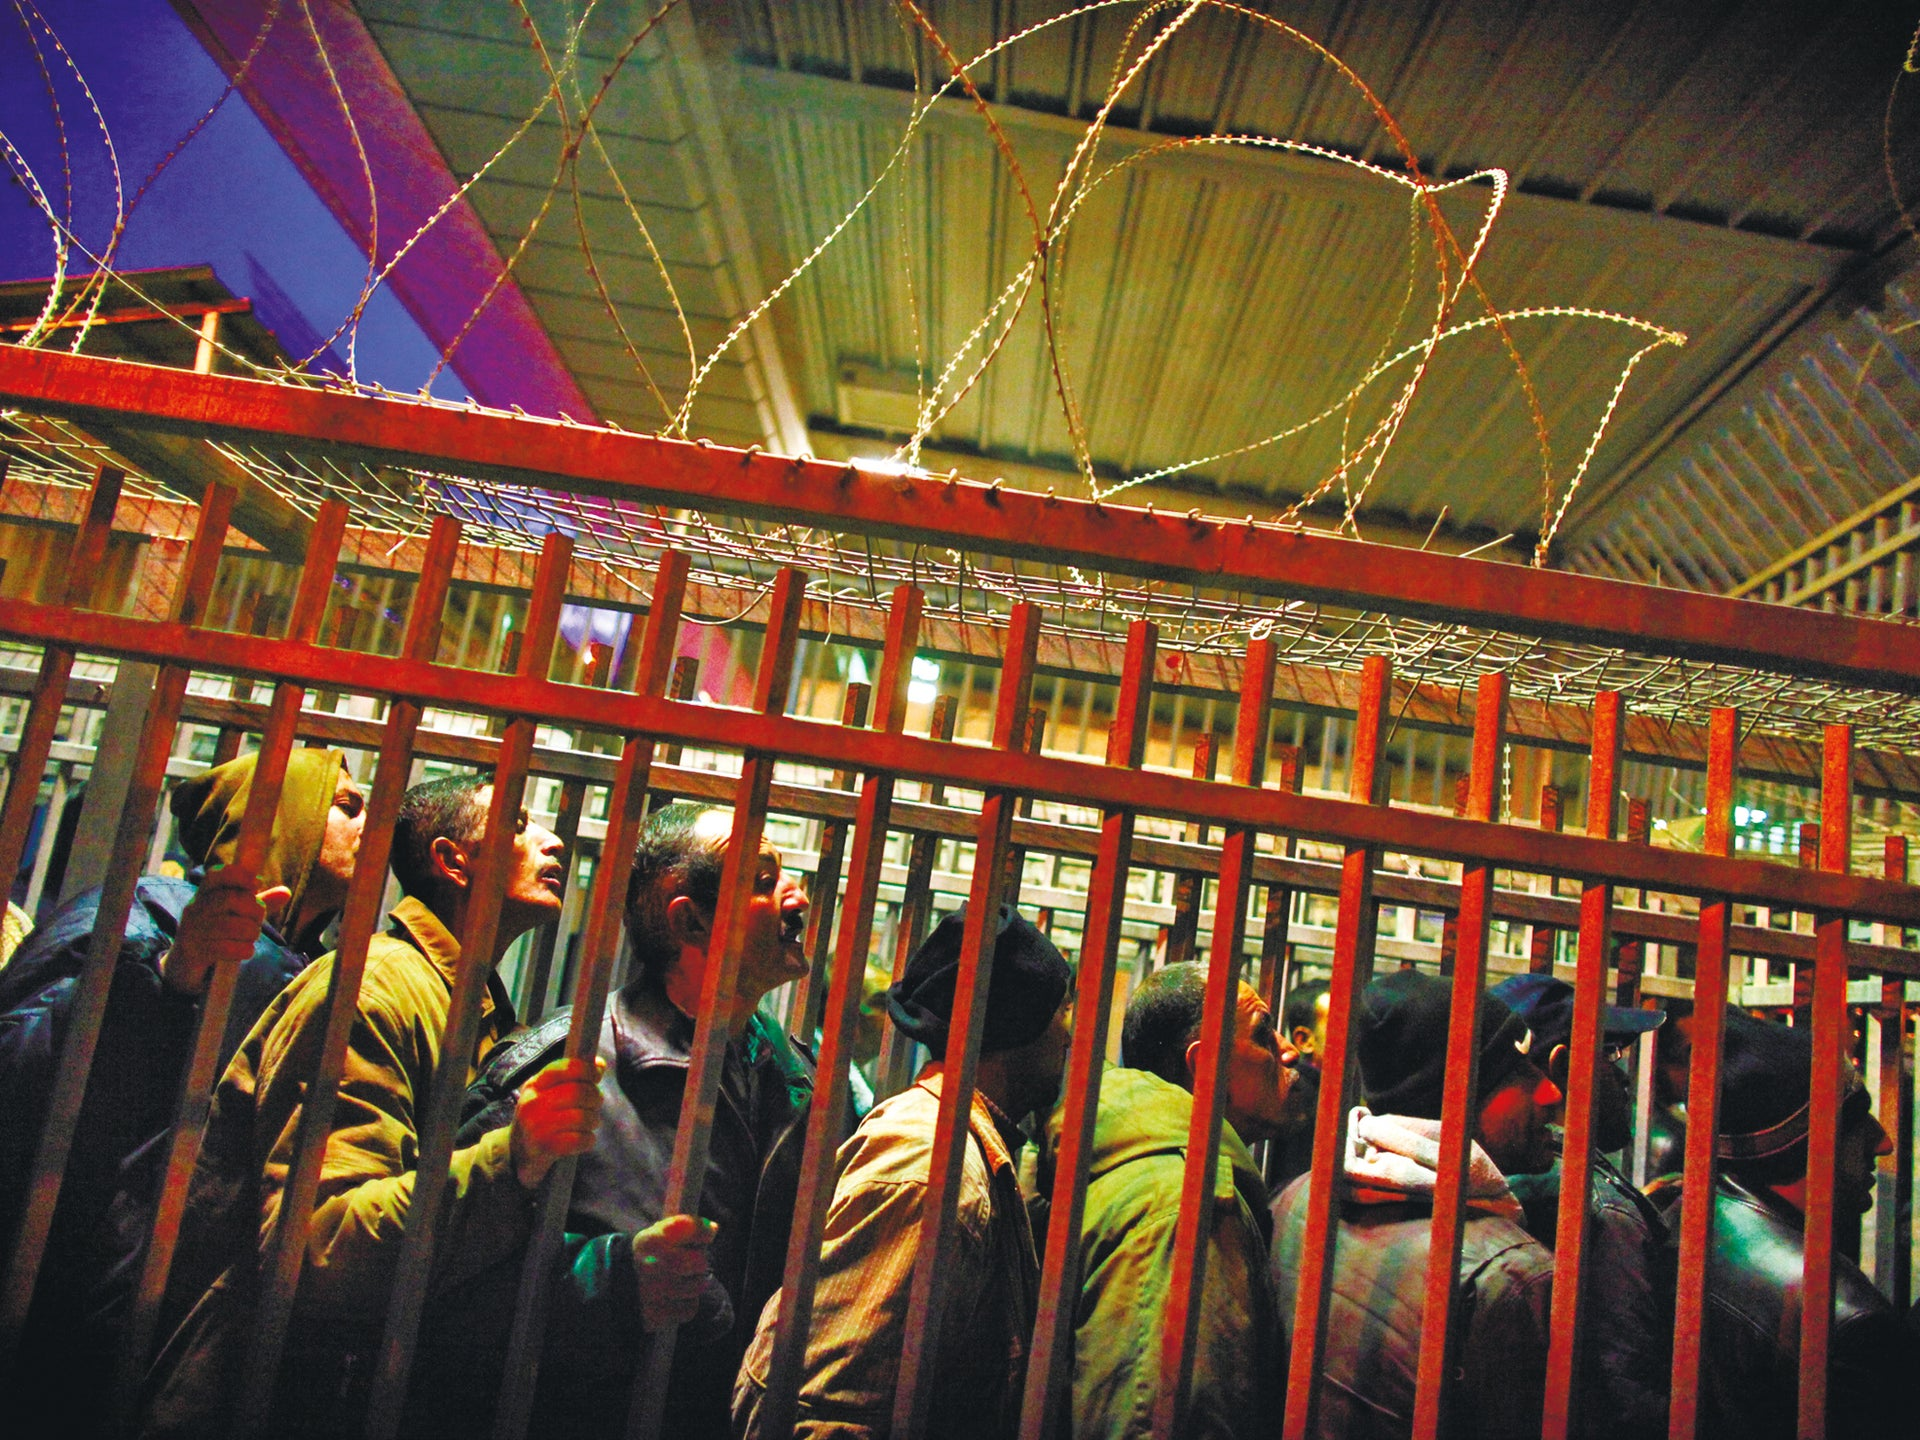 Palestinians at the Qalandiyah checkpoint in 2012.